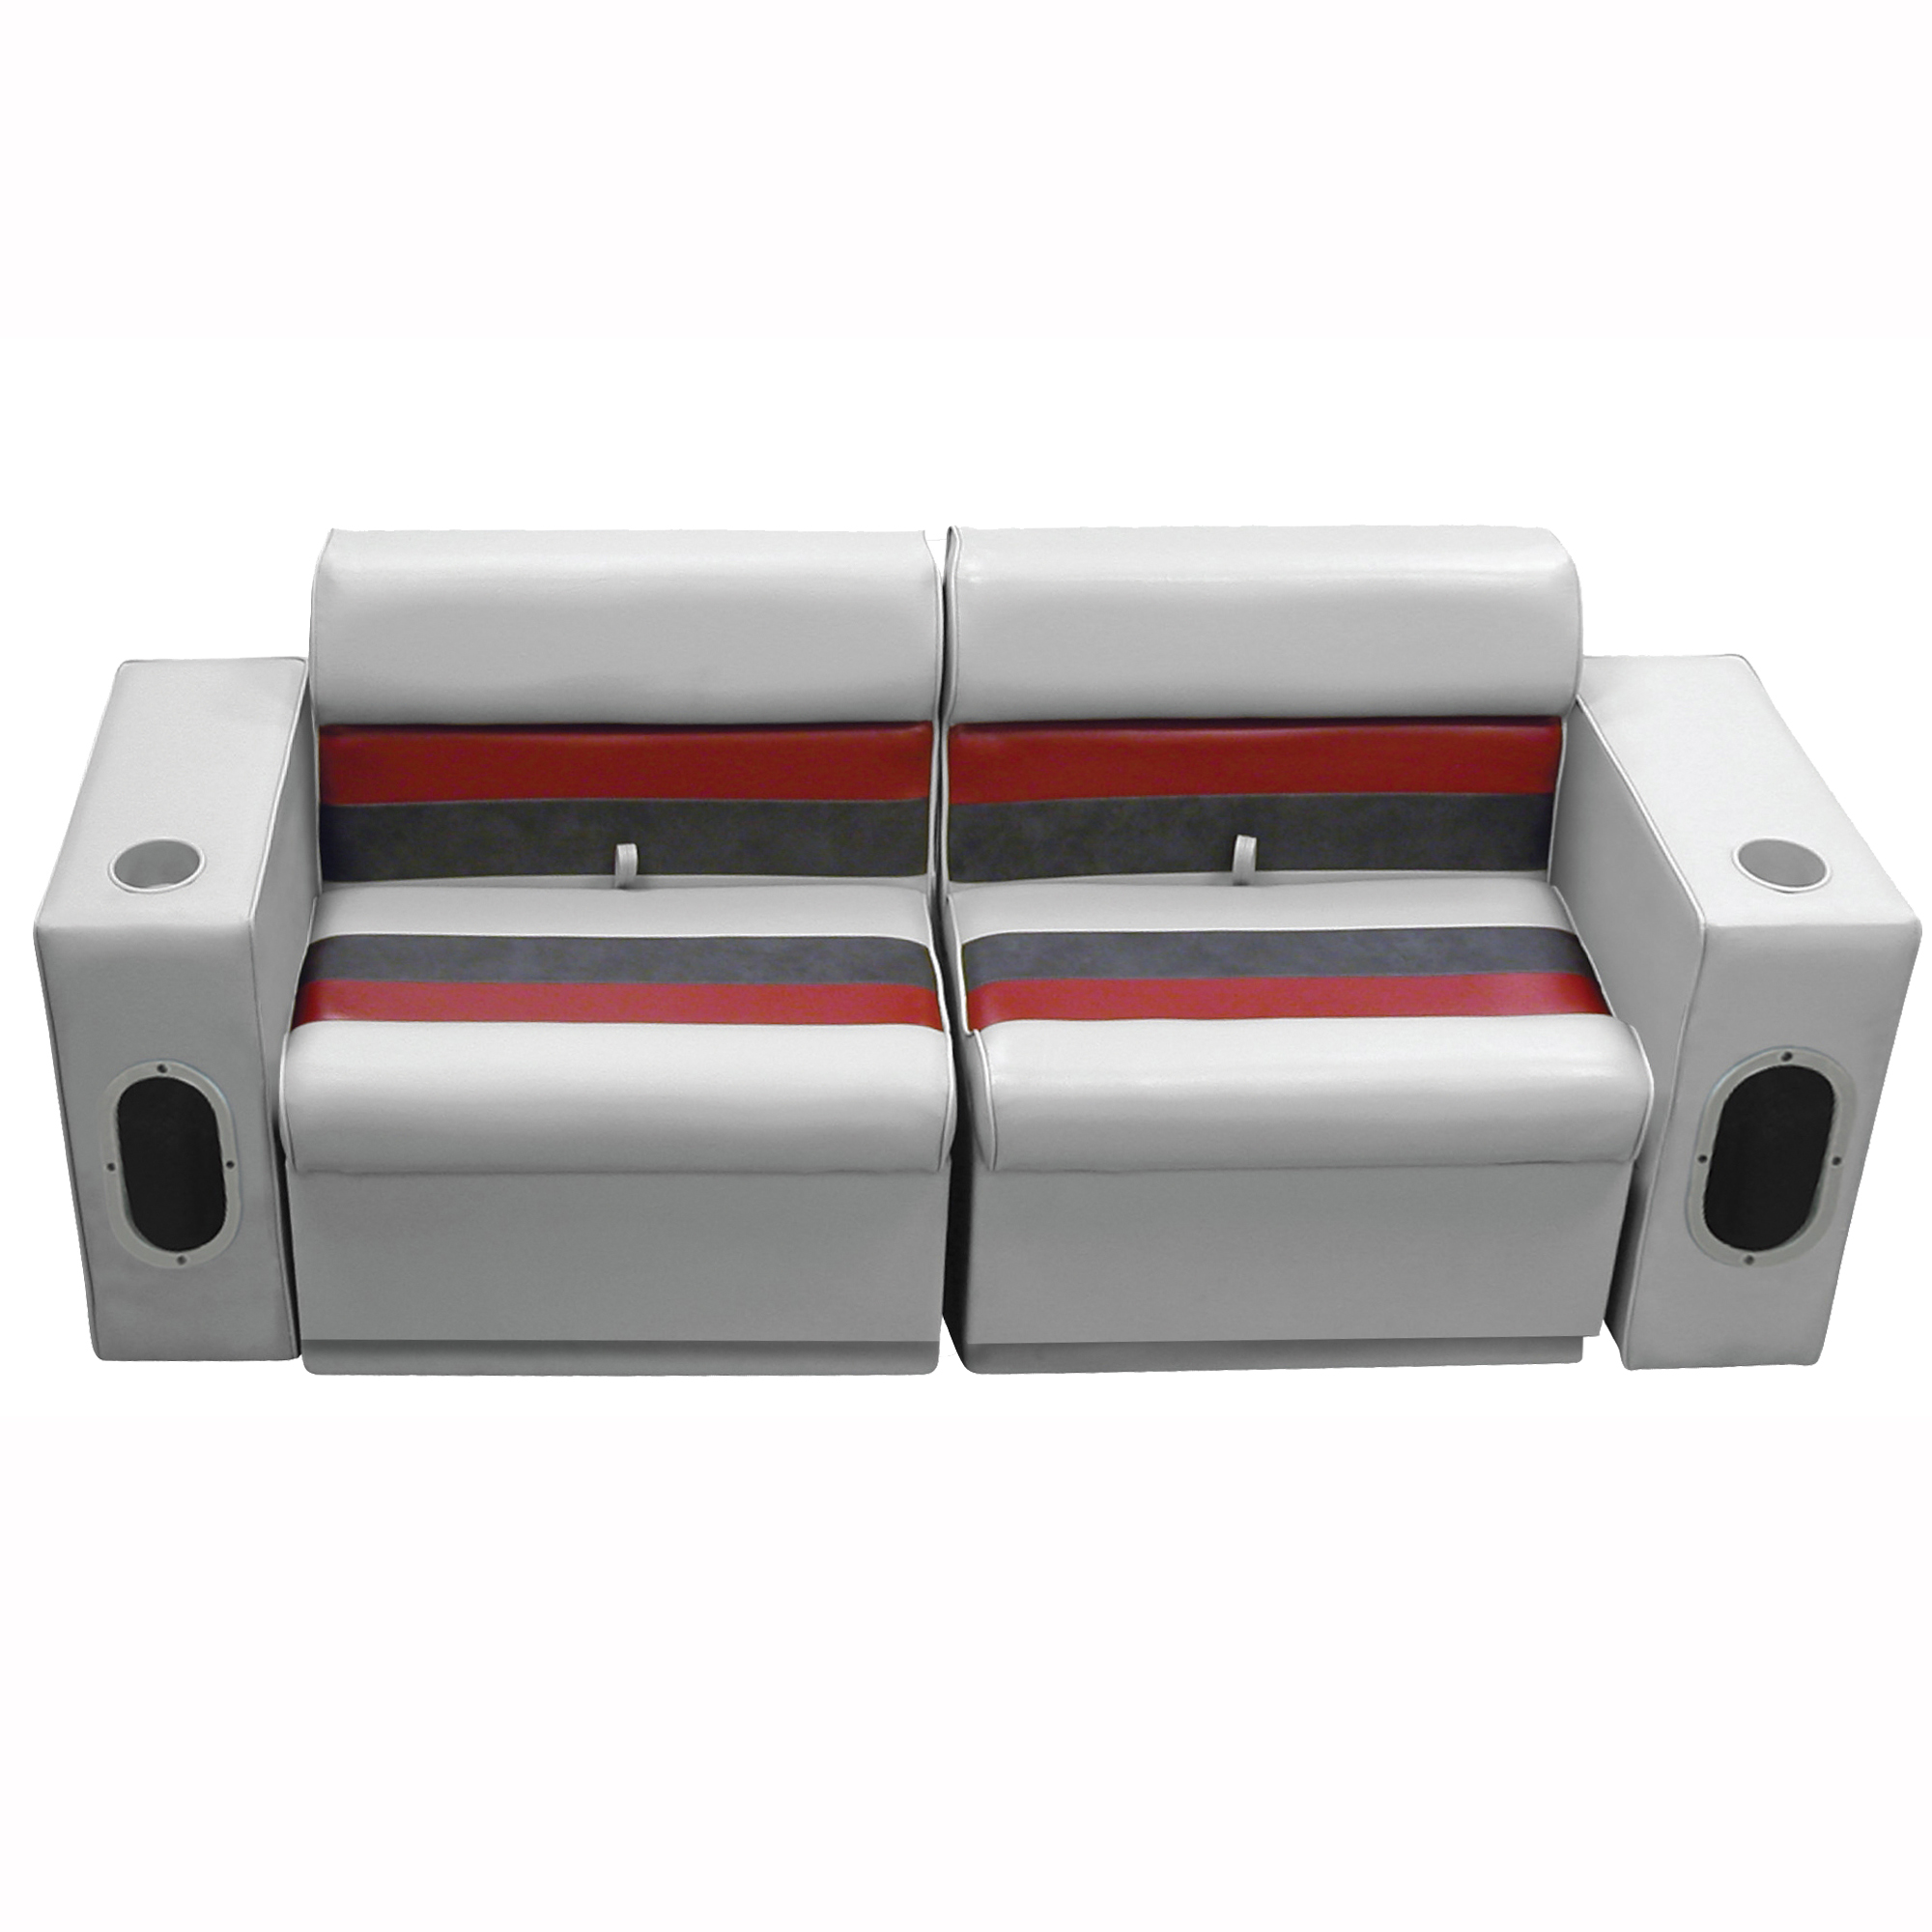 Deluxe Pontoon Furniture w/Toe Kick Base - Front Group 5 Package, Gray/Red/Charc